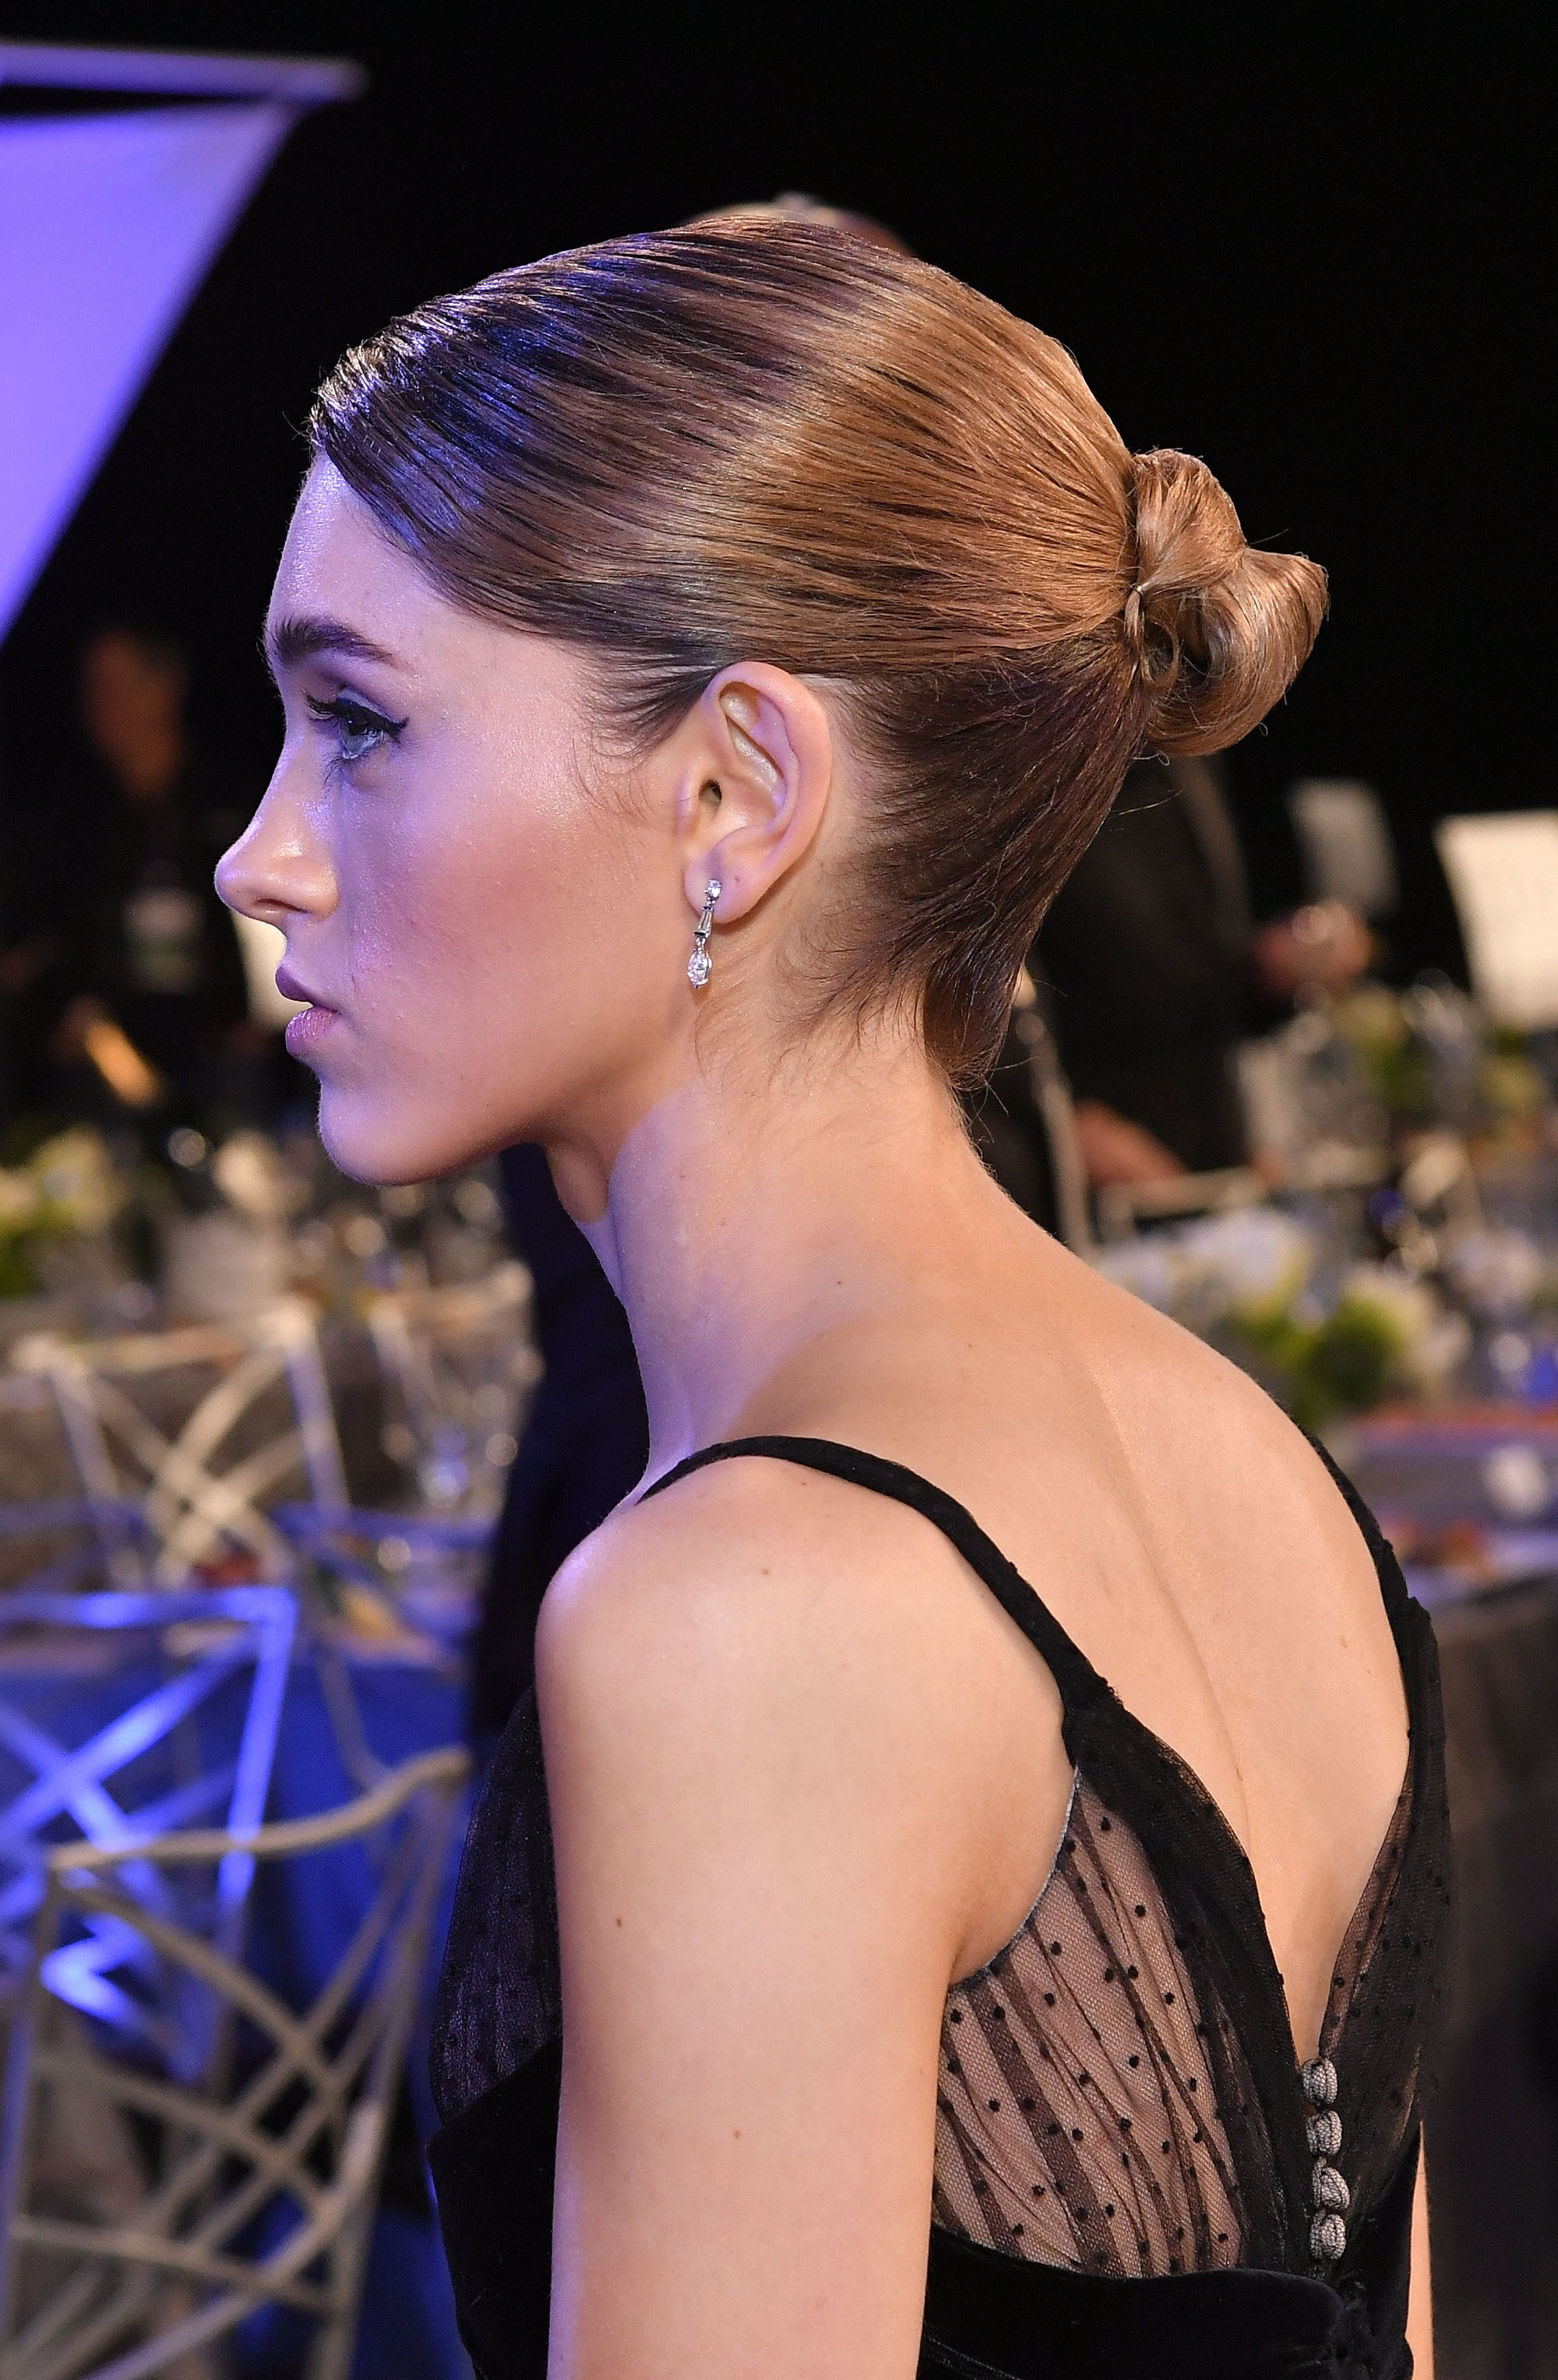 stranger things star natalia dyer at the 2018 sag awards with a ballerina chignon